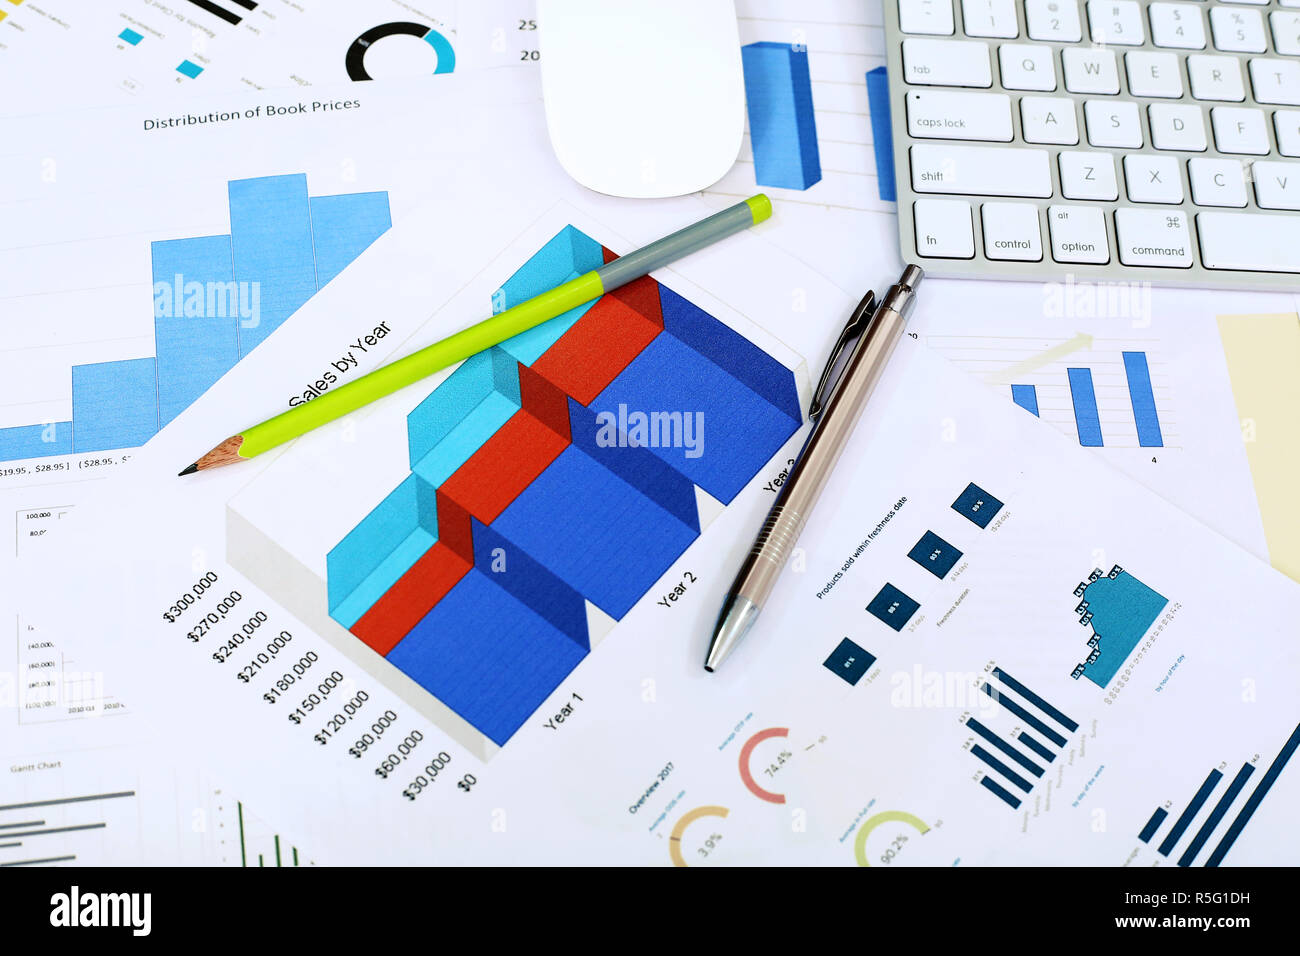 Picture of chart paper, pen, pencil, mouse and keyboard on the table. Stock Photo